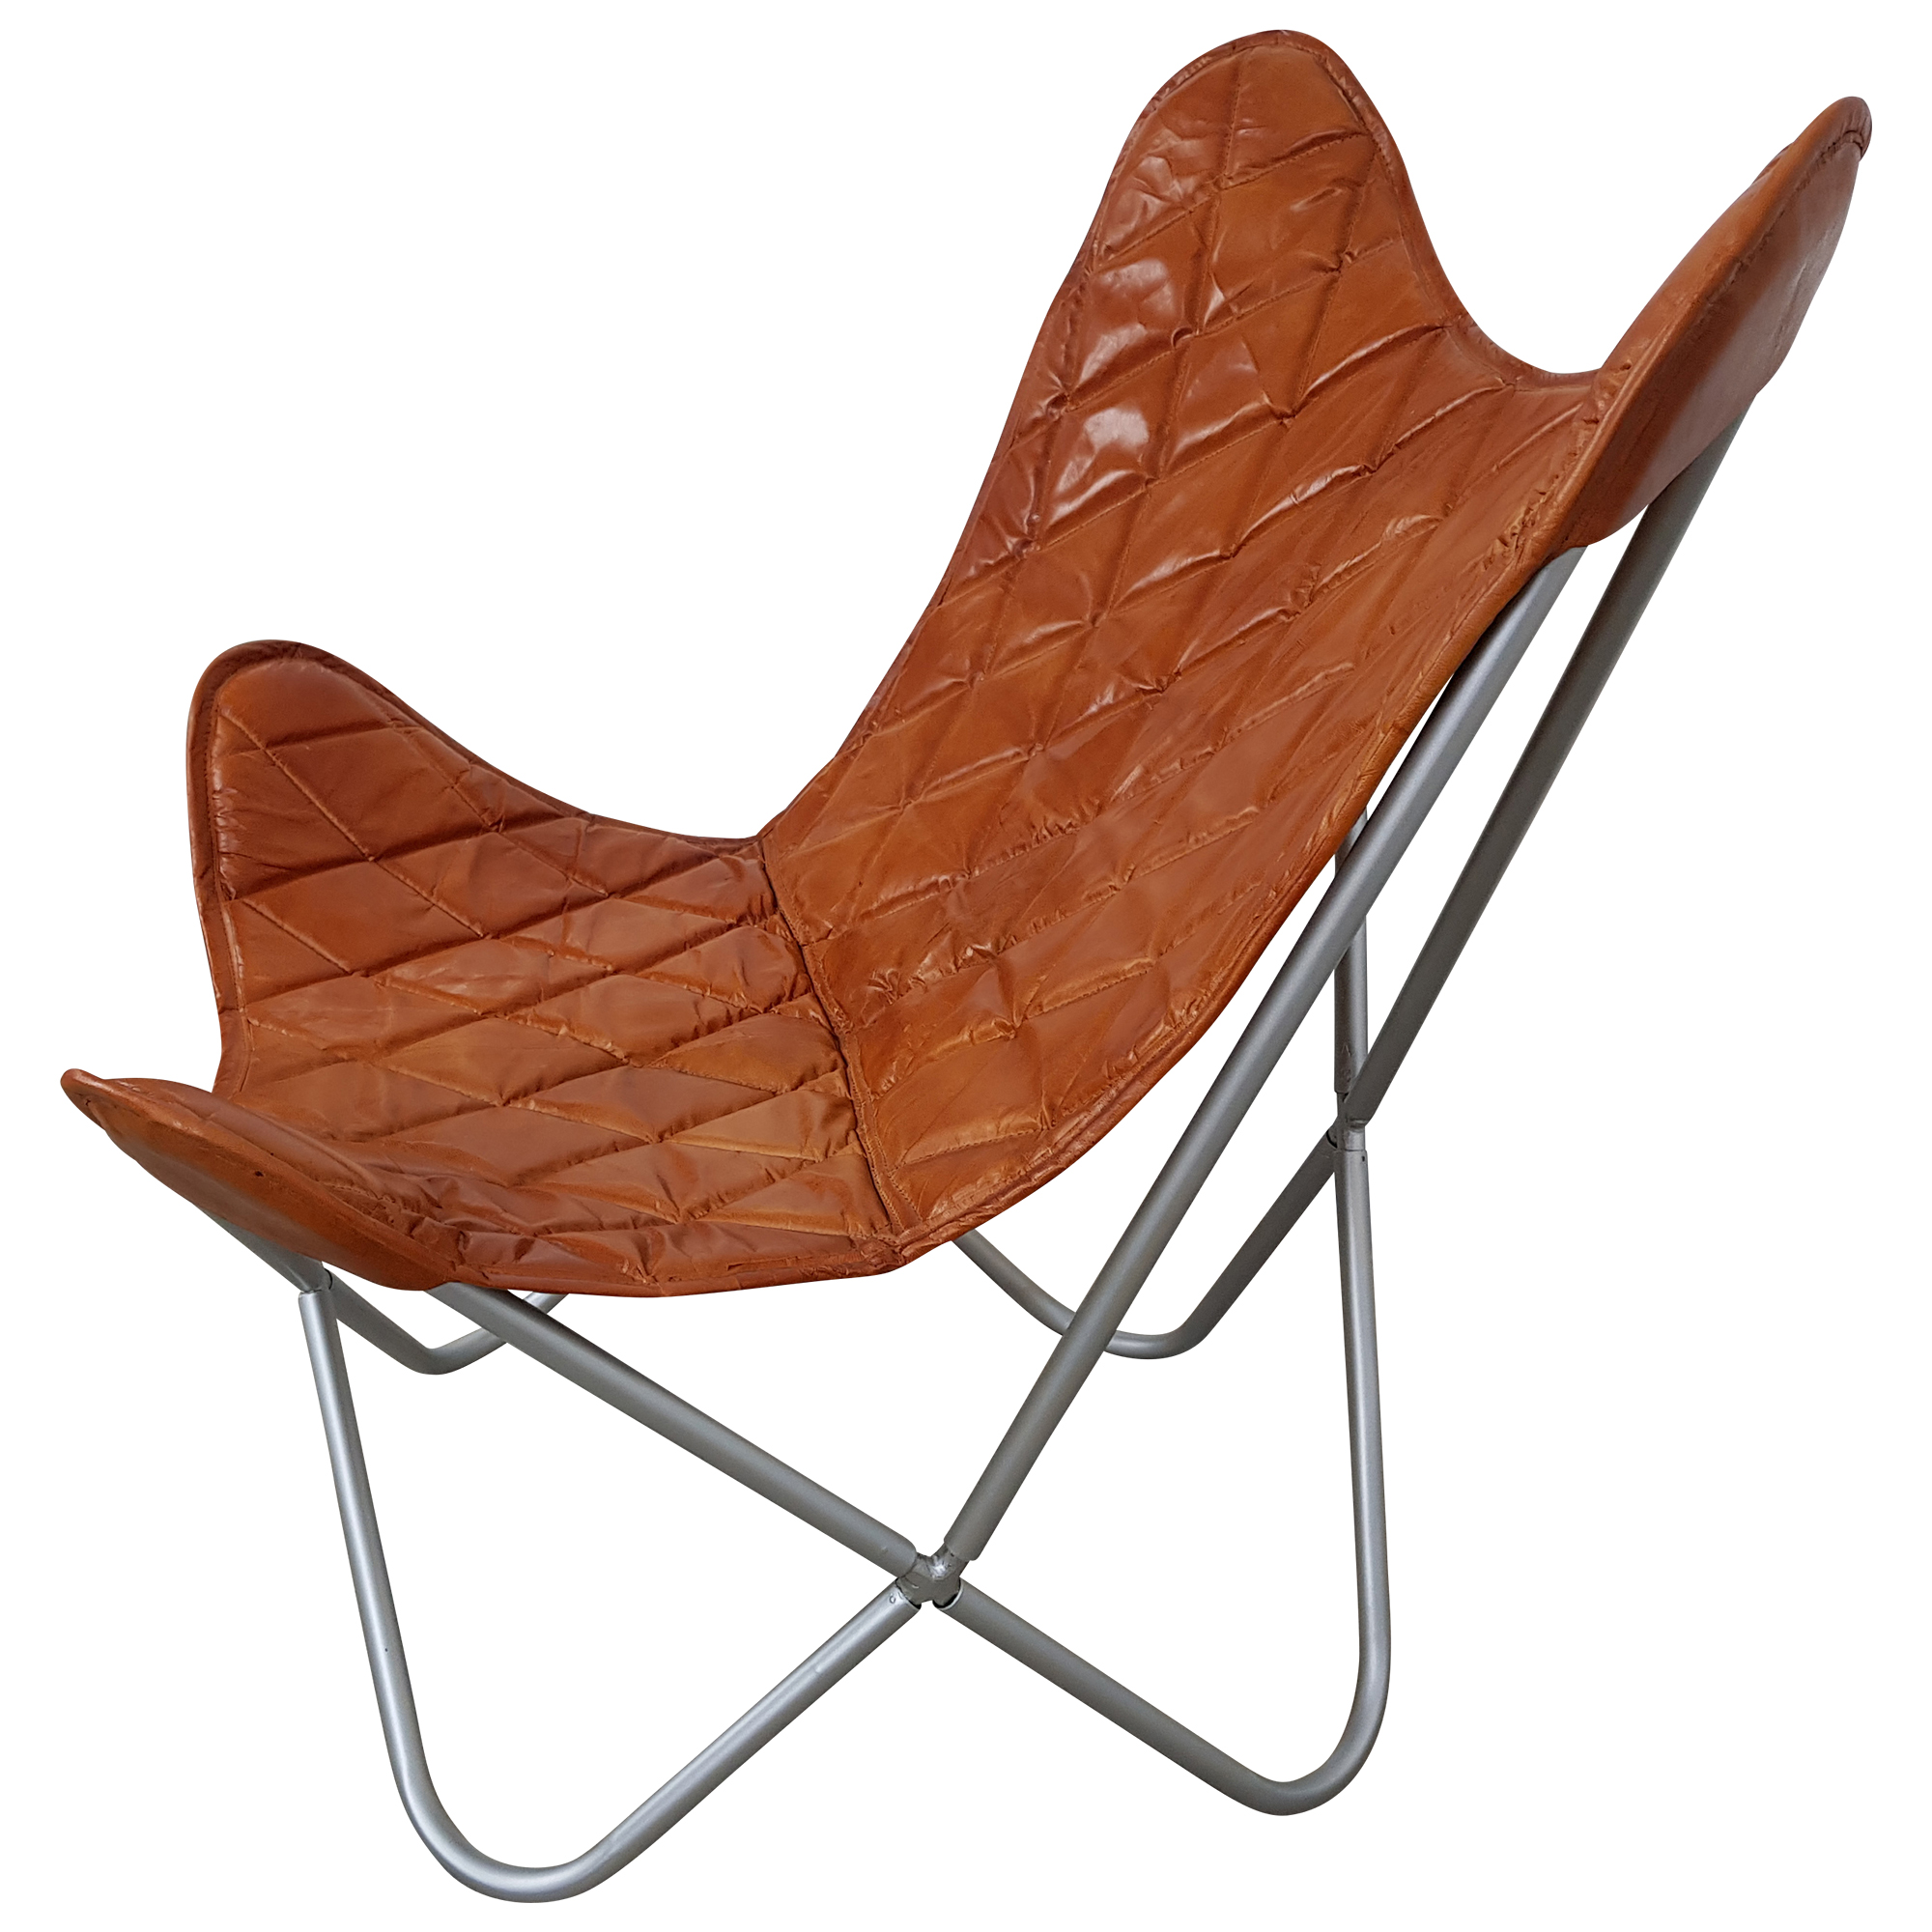 Retro Sessel Leder Butterfly Chair Sessel Design Lounge Stuhl Leder Braun